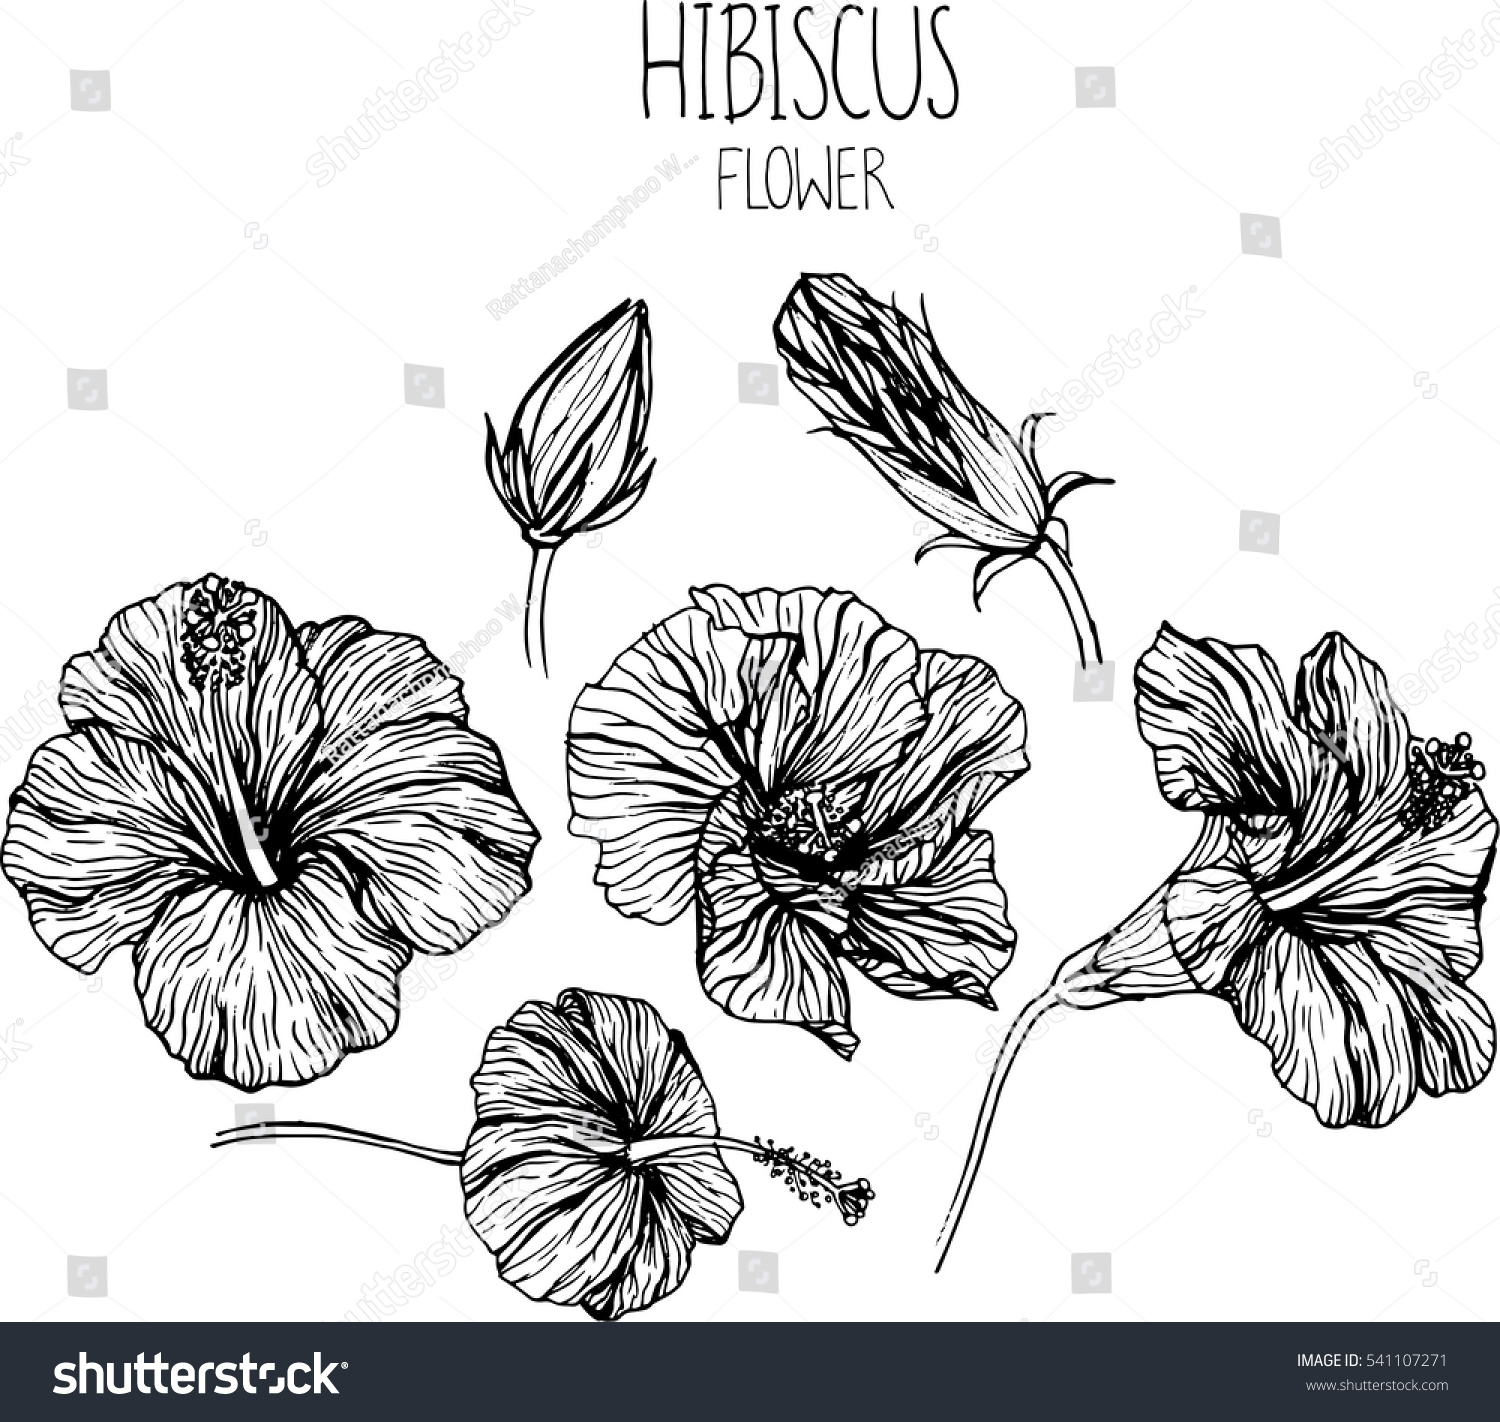 Hibiscus flowers drawing vector illustration clipart stock photo hibiscus flowers drawing vector illustration and clip art izmirmasajfo